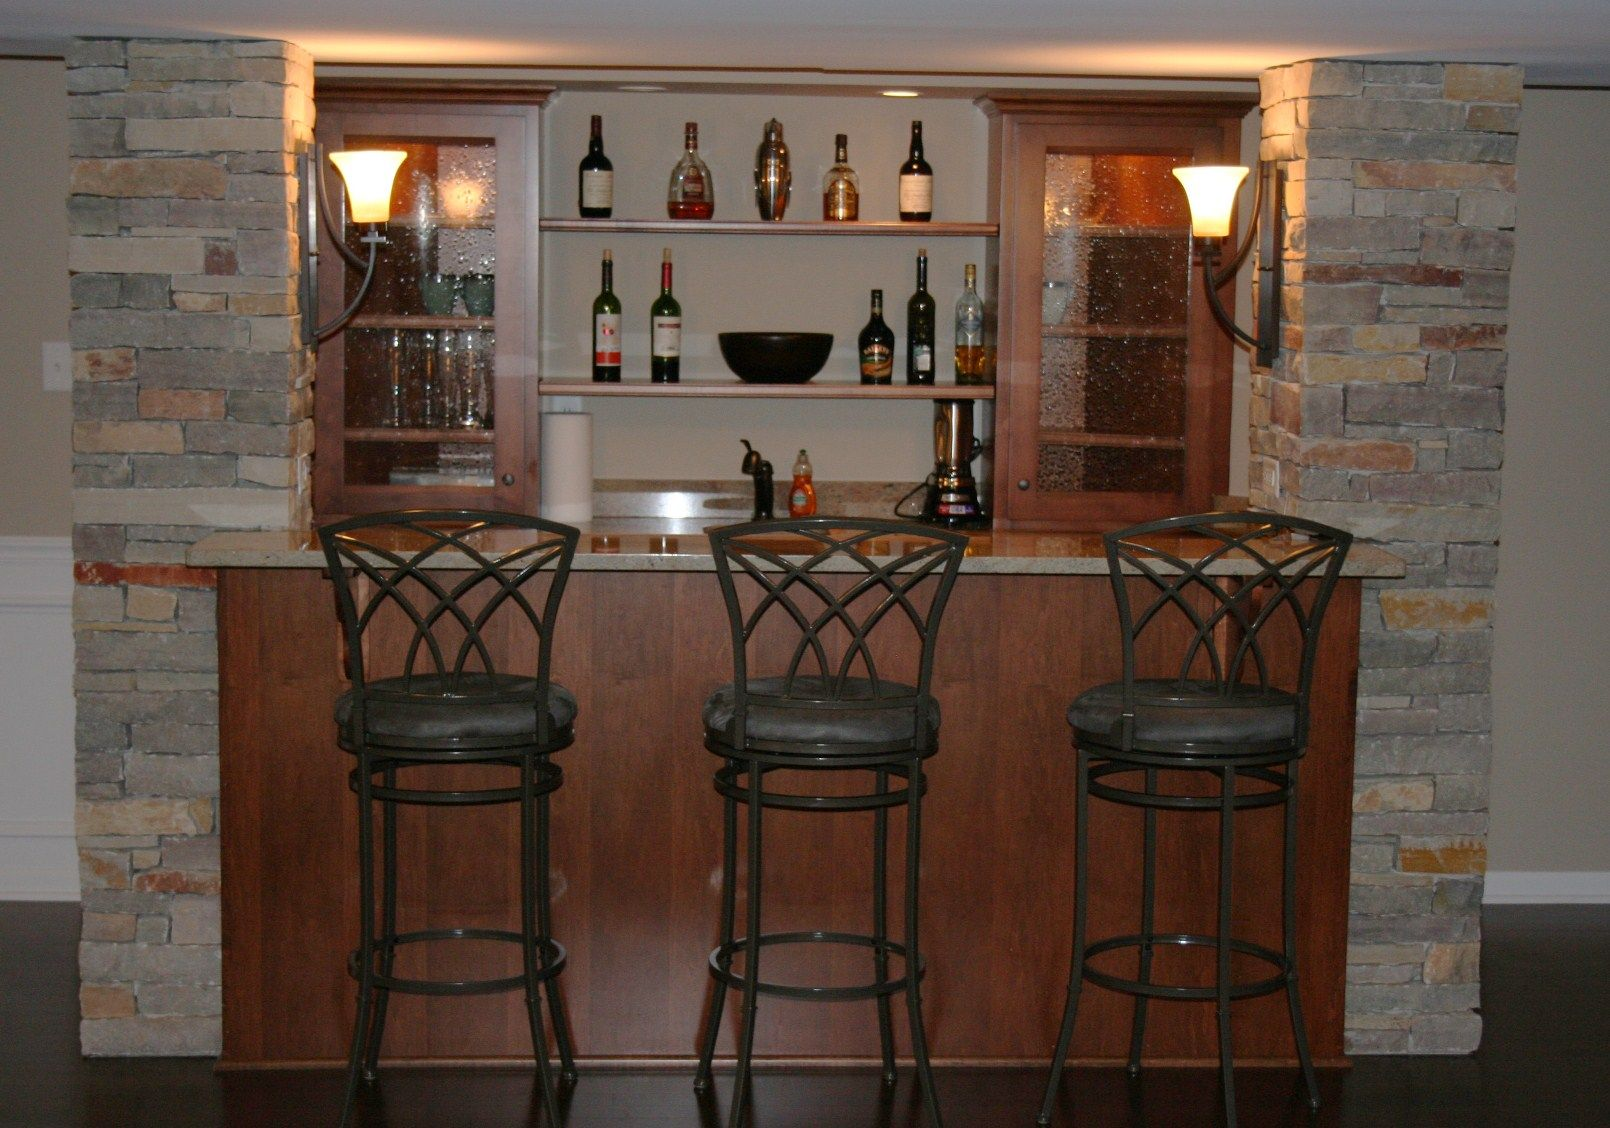 Basement Custom Basement Bar Plans With Bar Table Have Many Chairs And Provide Furniture Chairs S Basement Bar Designs Basement Bar Design Building A Home Bar